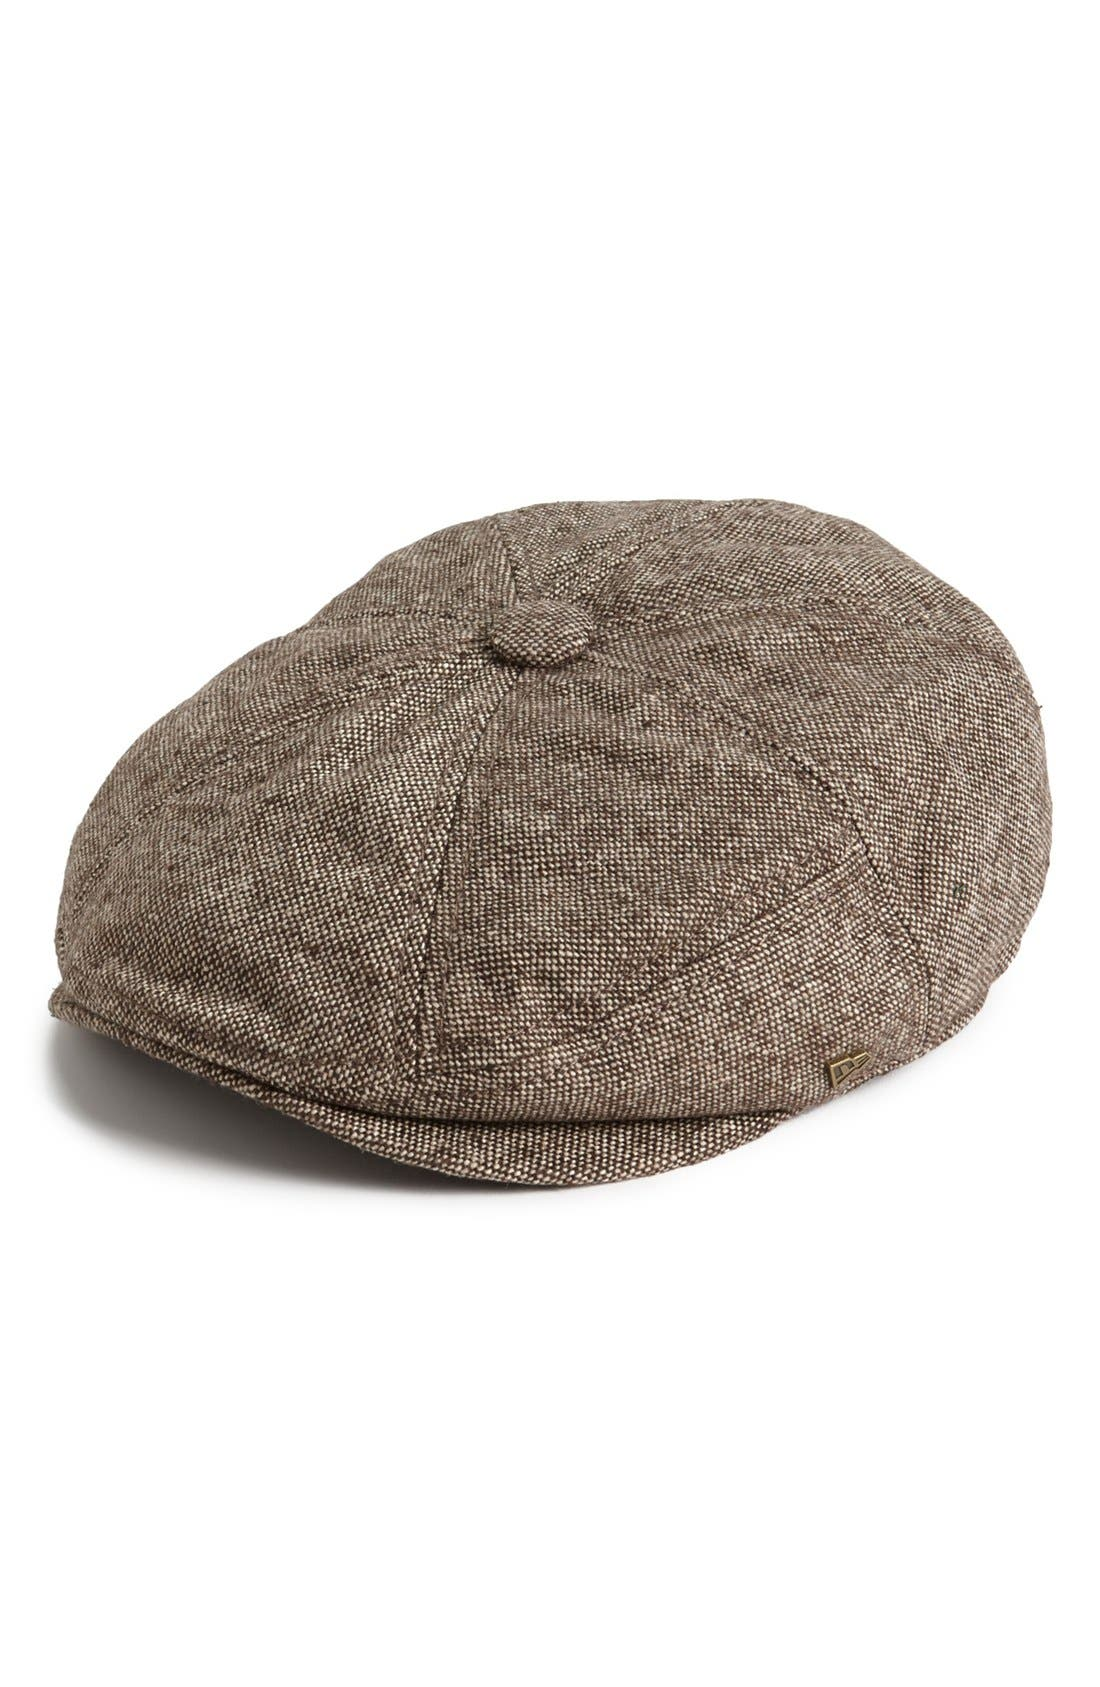 Alternate Image 1 Selected - New Era Cap 'EK®' Tweed Driving Cap